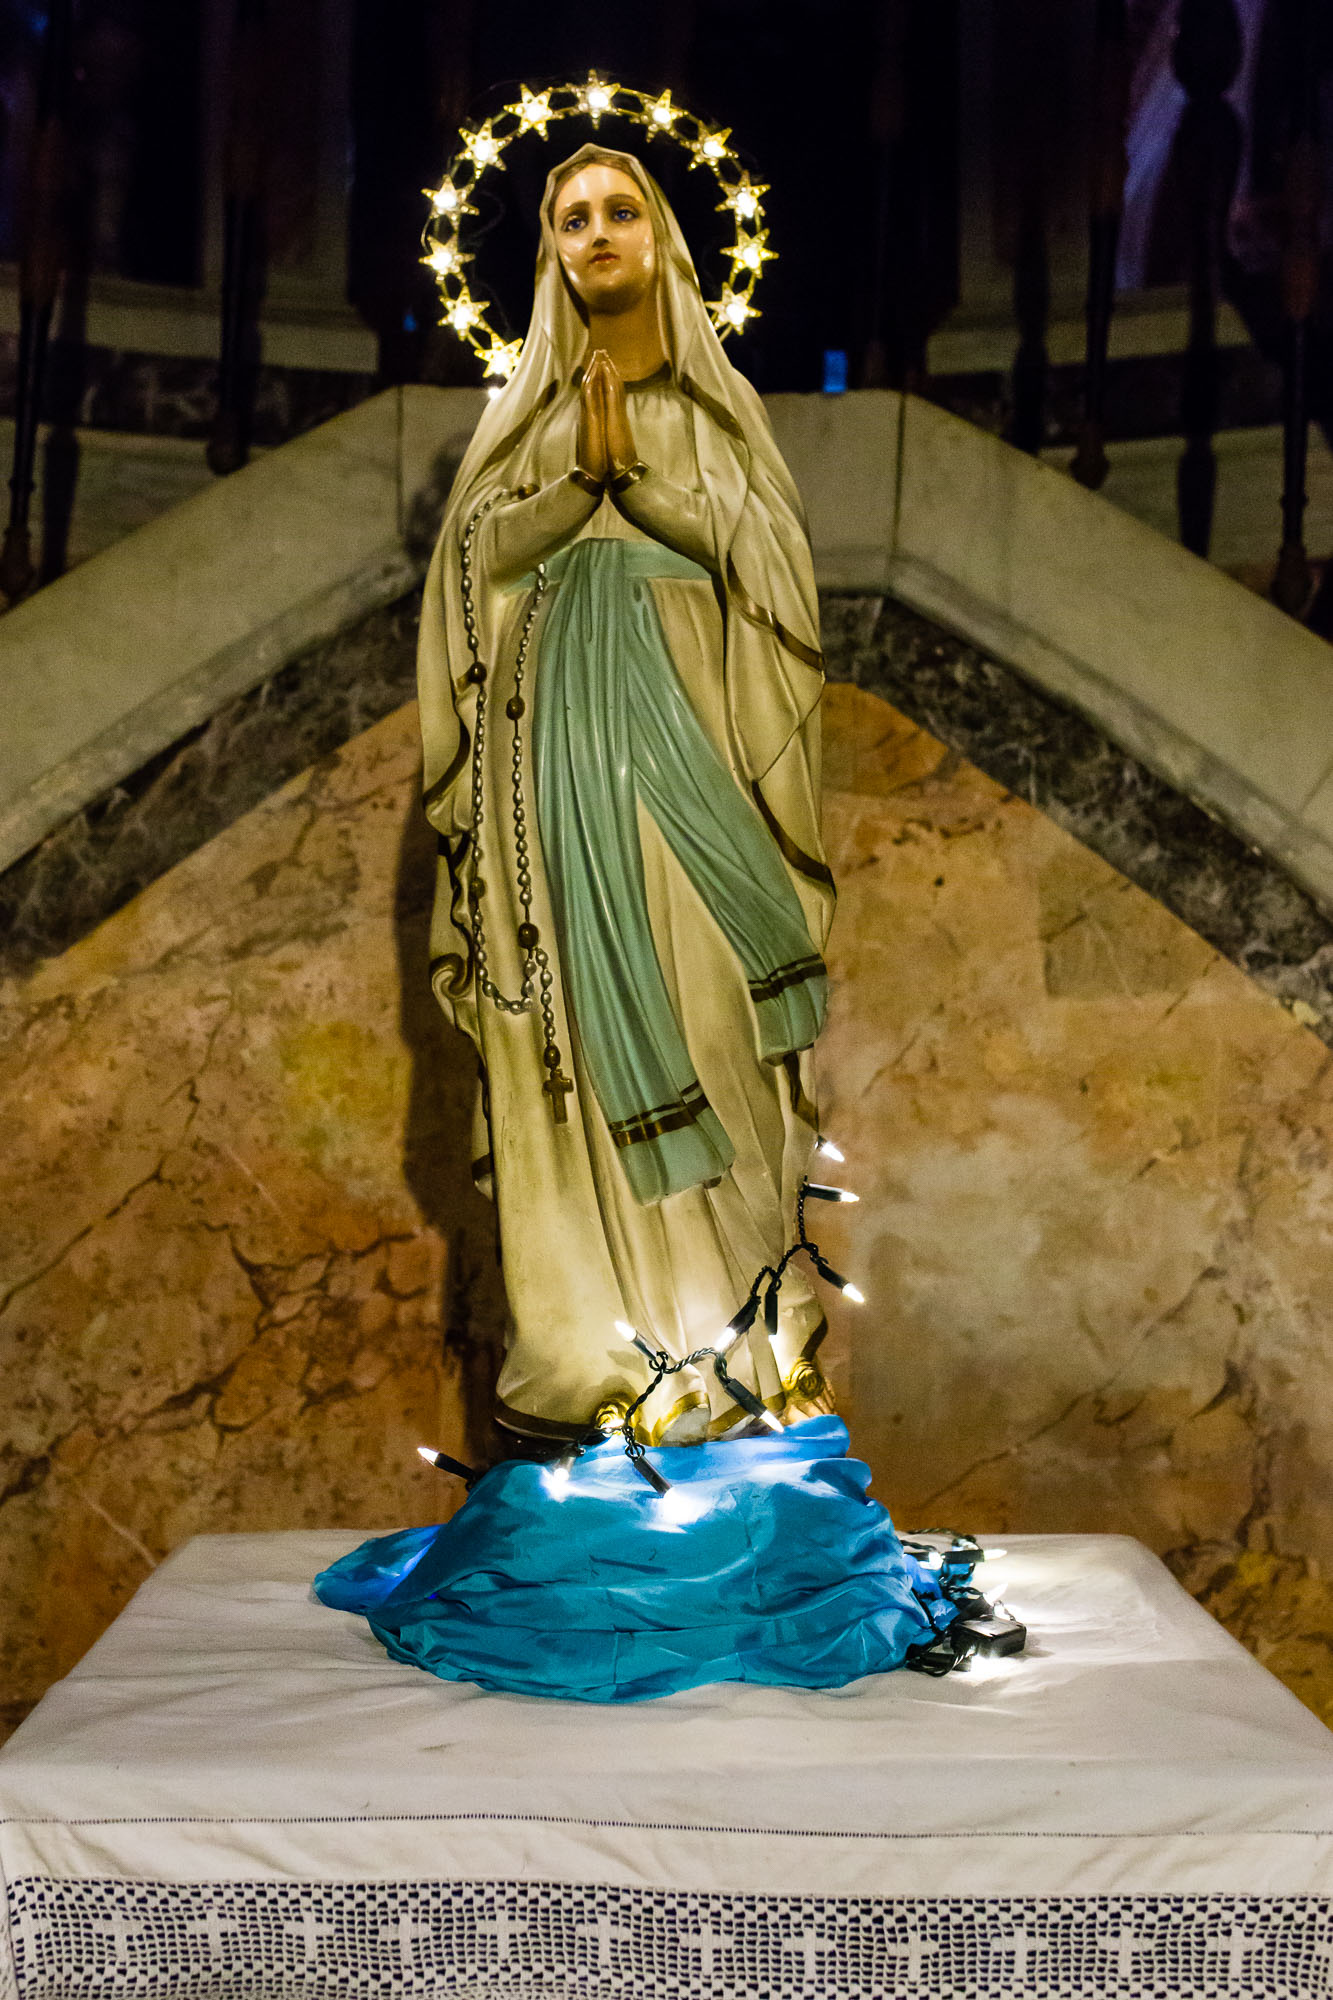 A statue of the Virgin Mary taken by Ben Lee, a derbyshire based photographer on his trip to Rome.